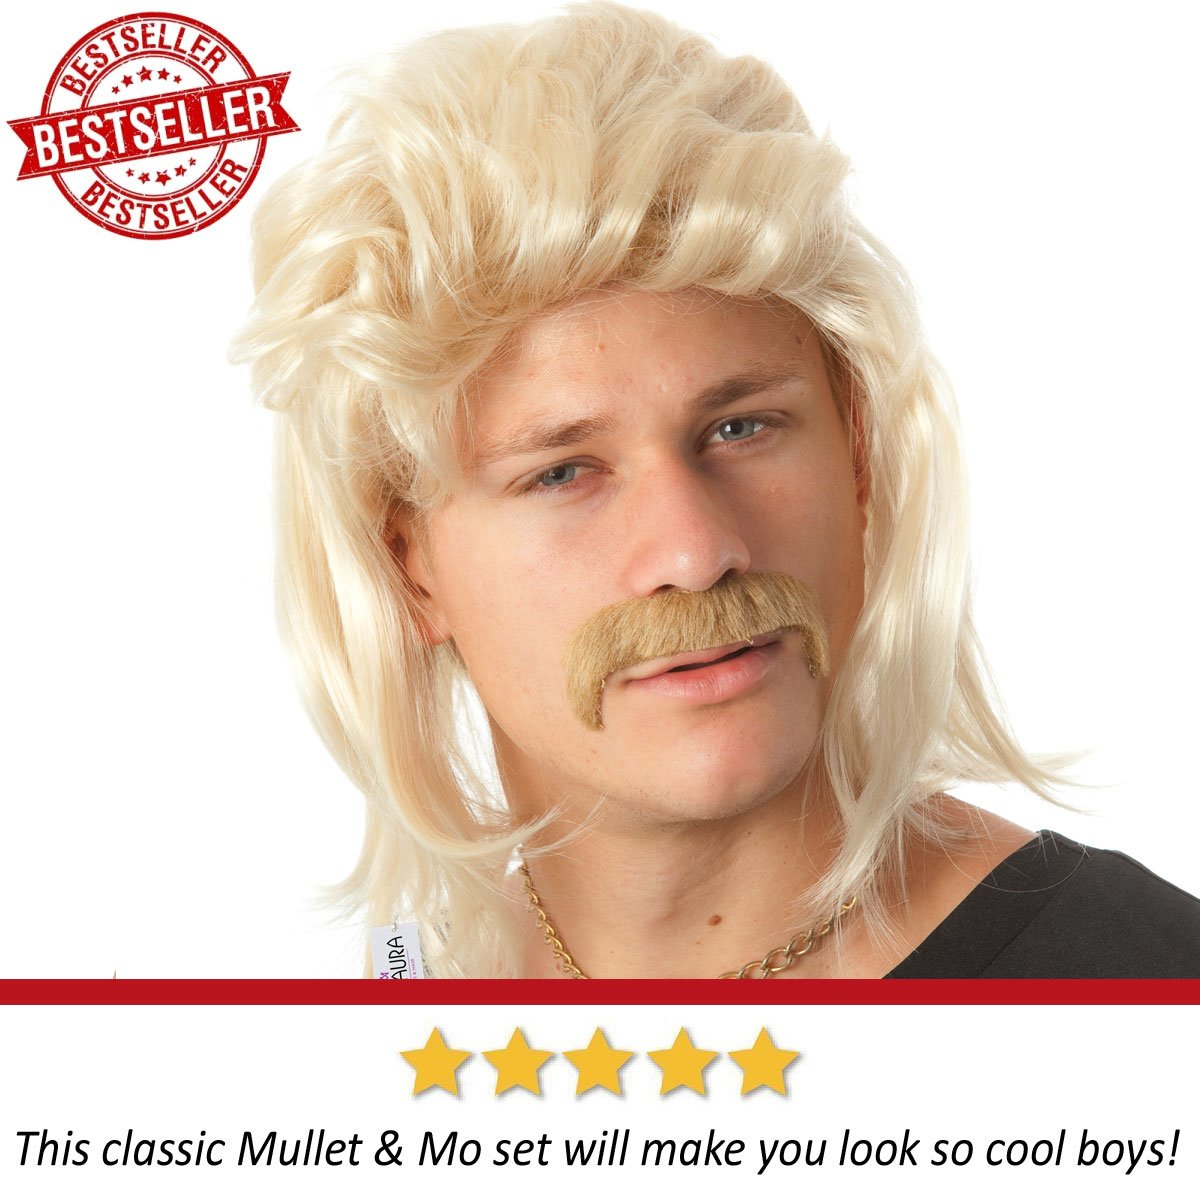 ALLAURA Blonde Mullet Wig Mustache - Hillbilly White Trash Redneck Costume 80s Mens by ALLAURA (Image #4)